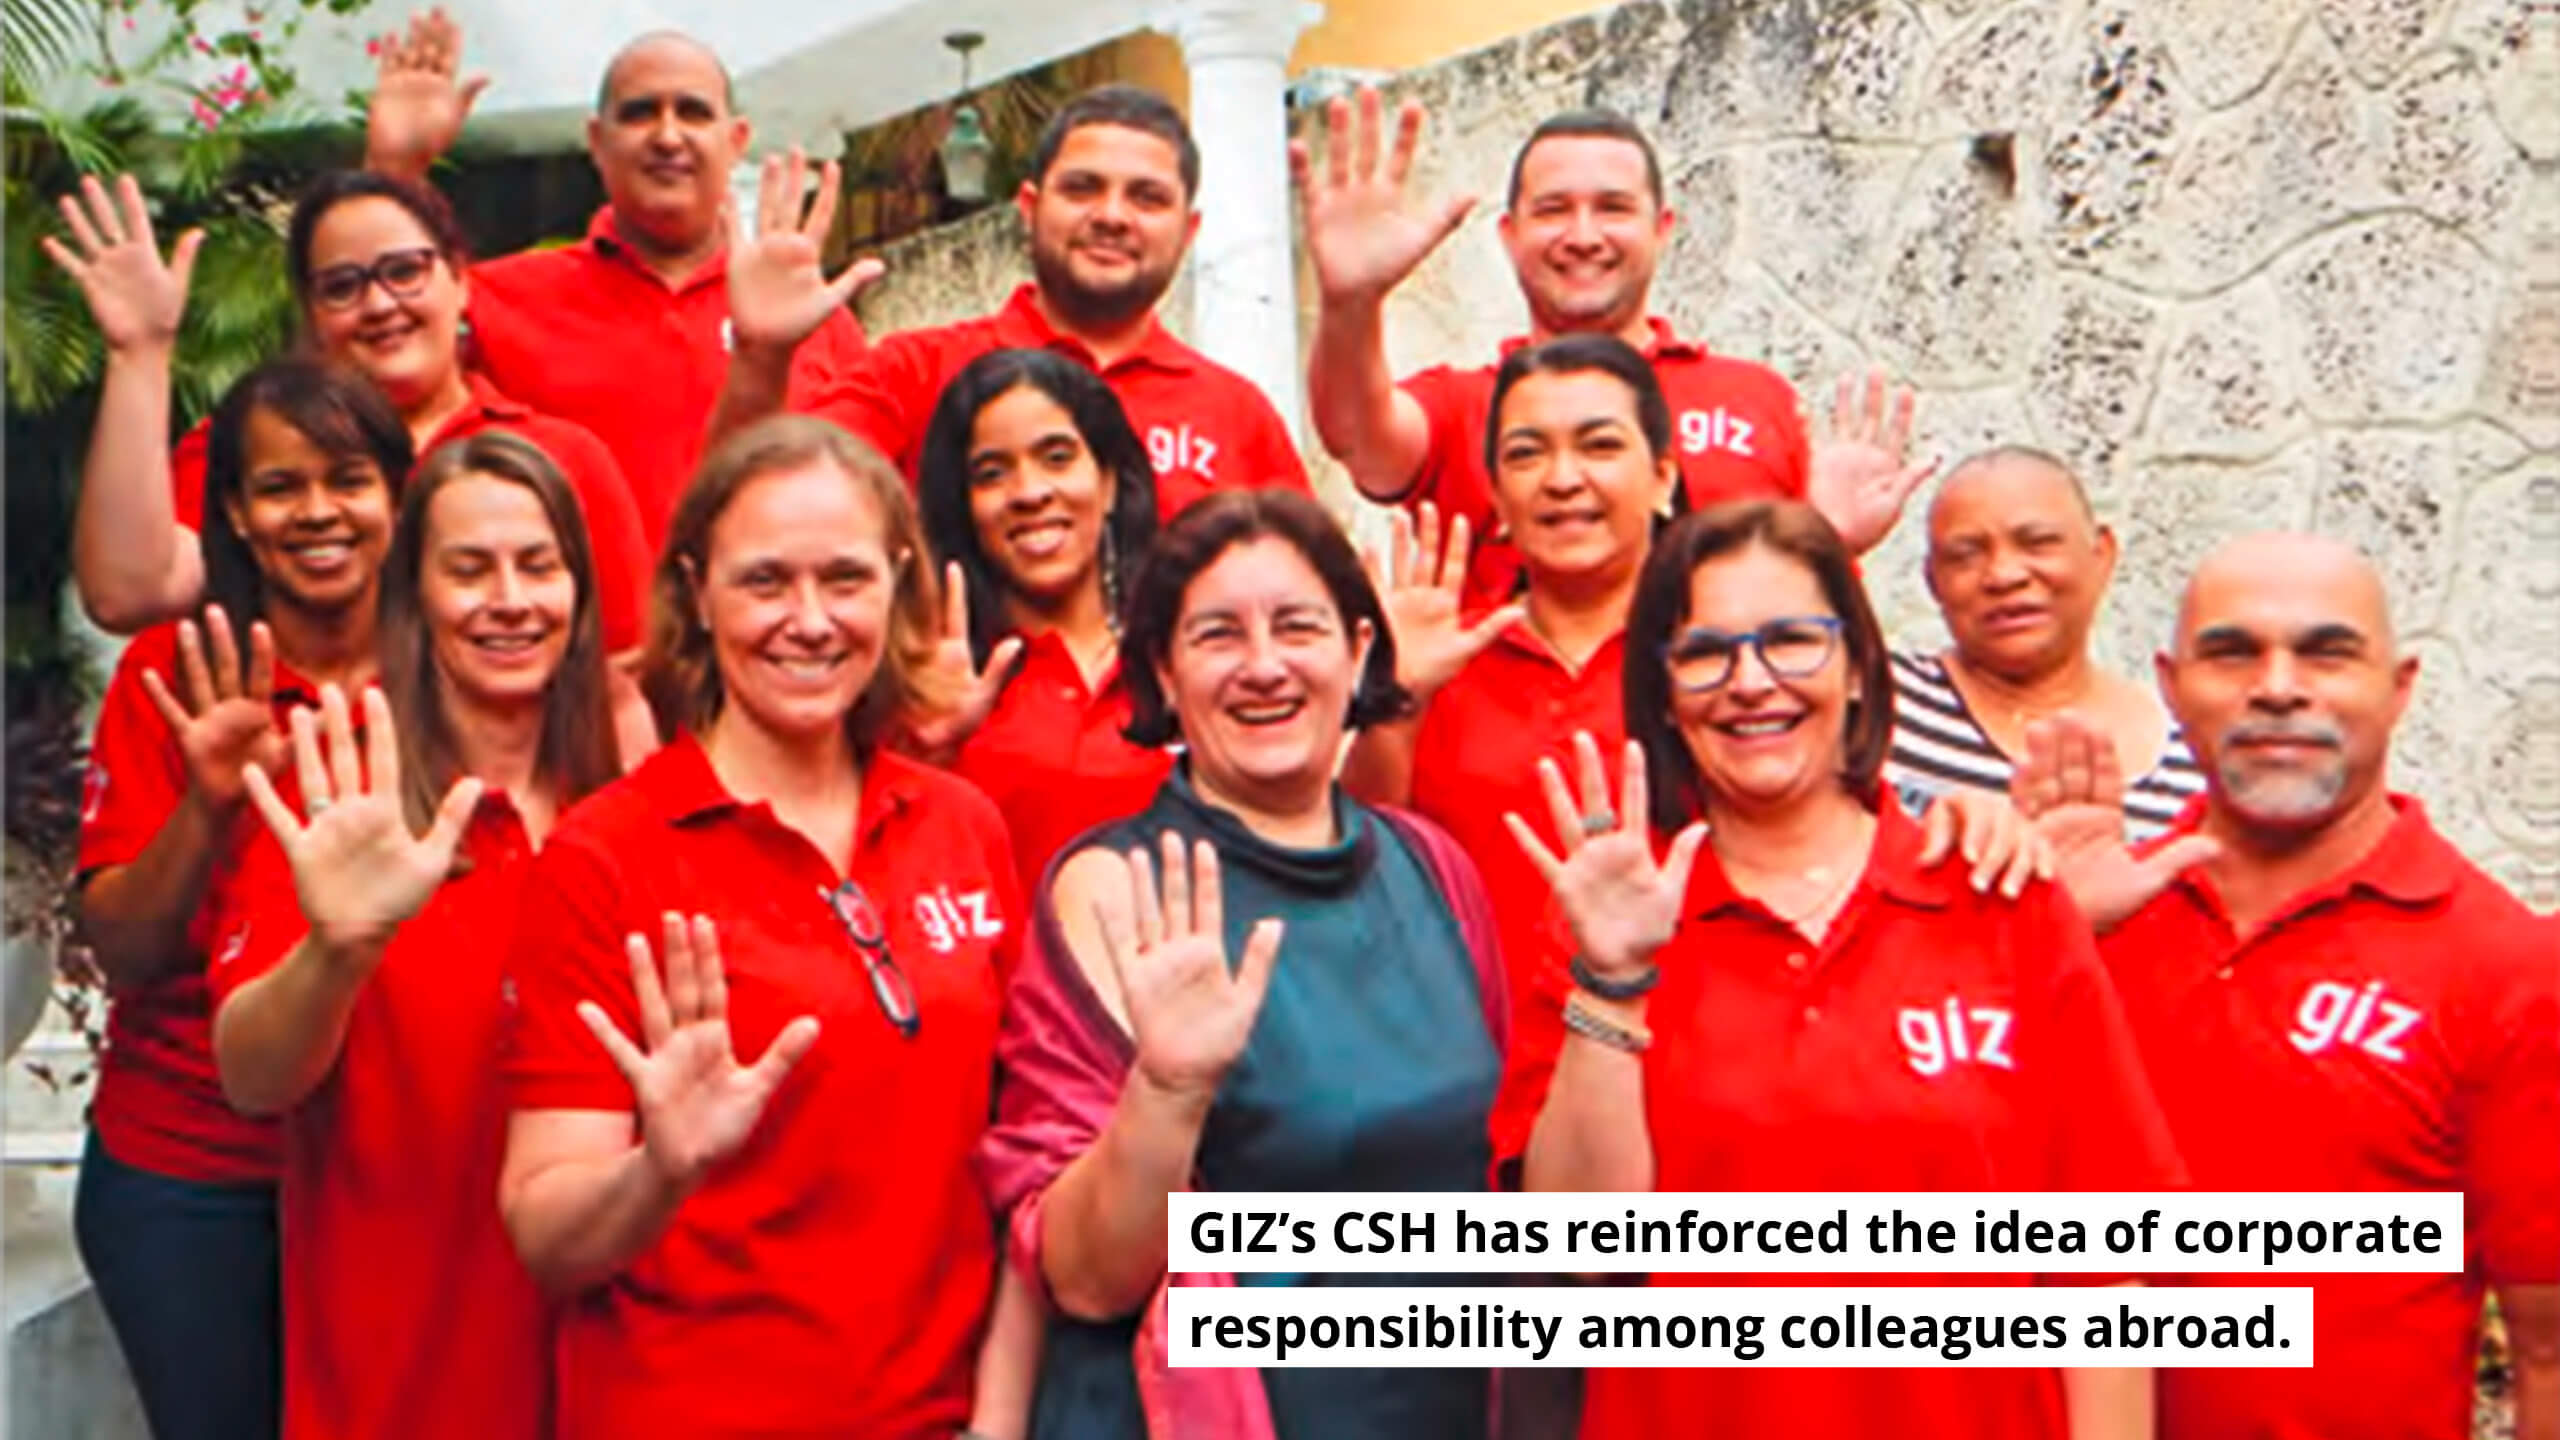 GIZ's CSH has reinforced the idea of corporate responsibility among colleagues abroad.